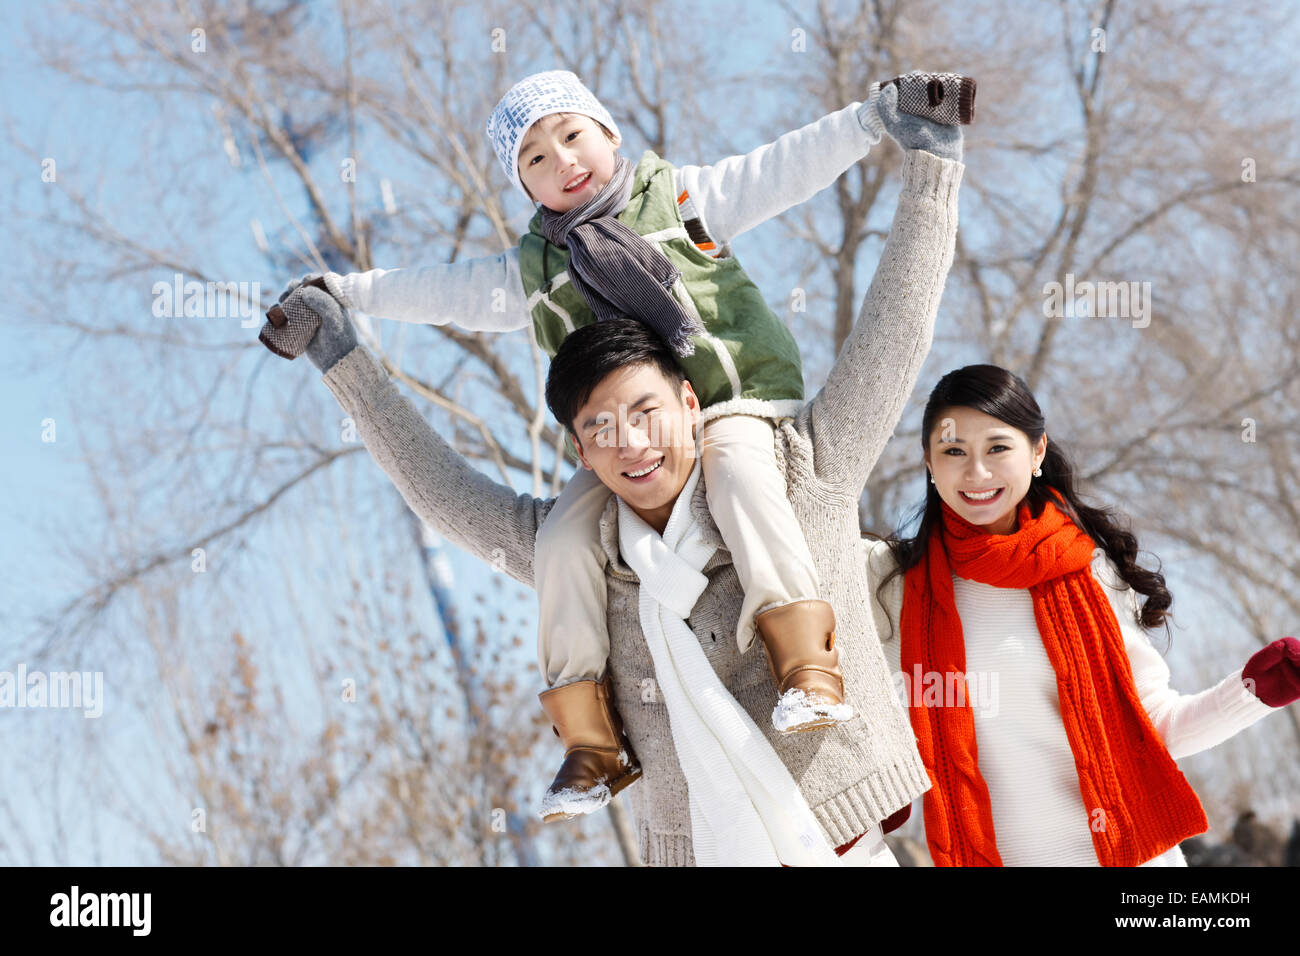 One-child families play outdoors - Stock Image